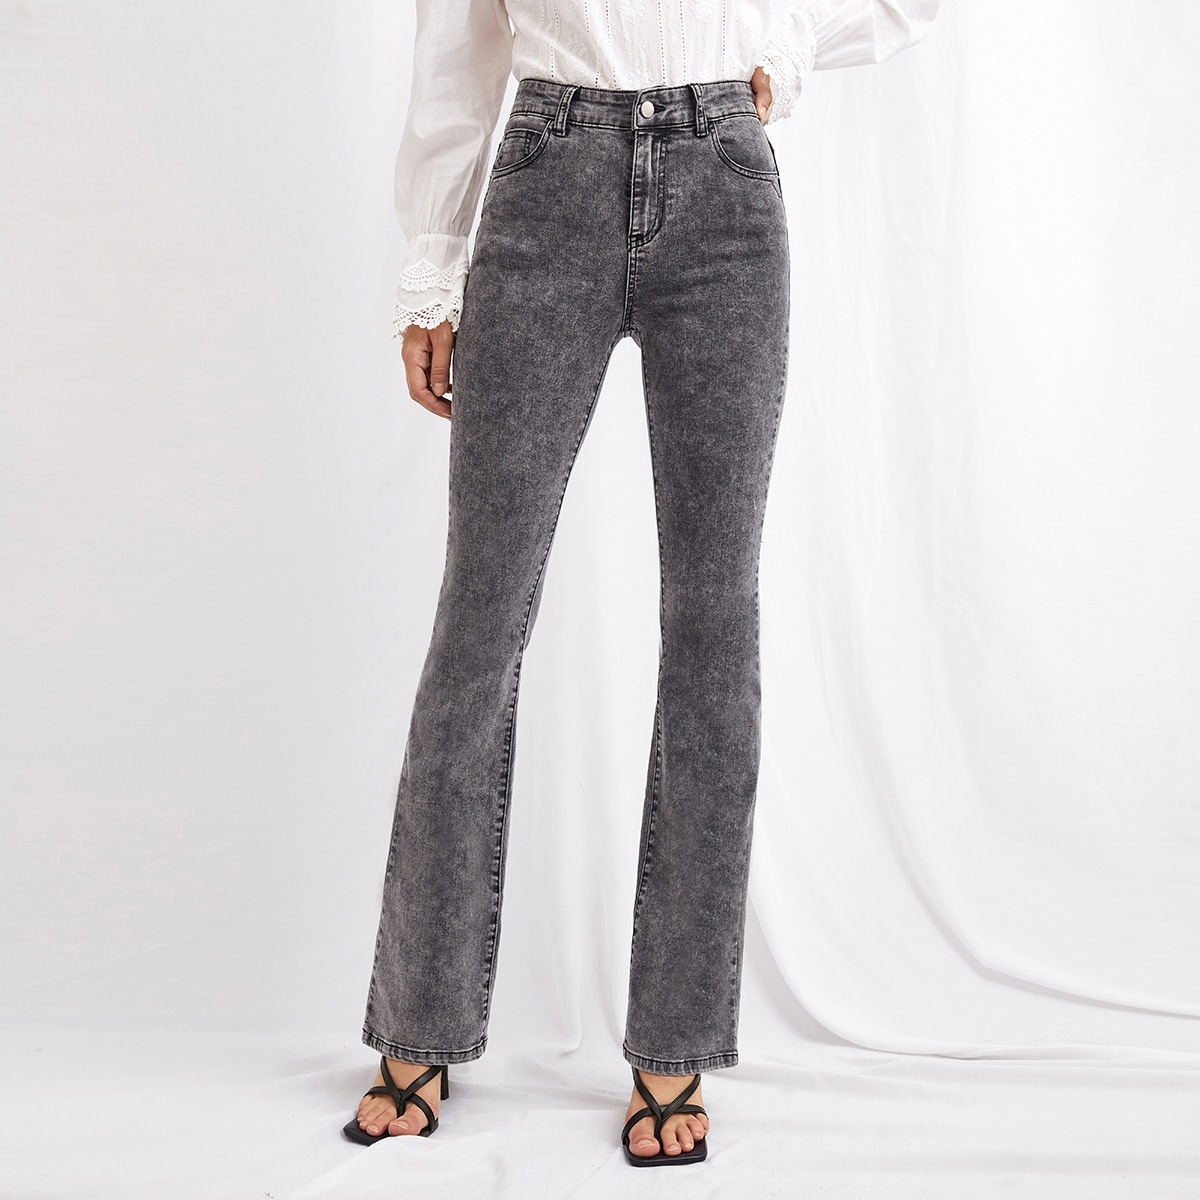 High-Waisted Dinner Date Flare Jeans